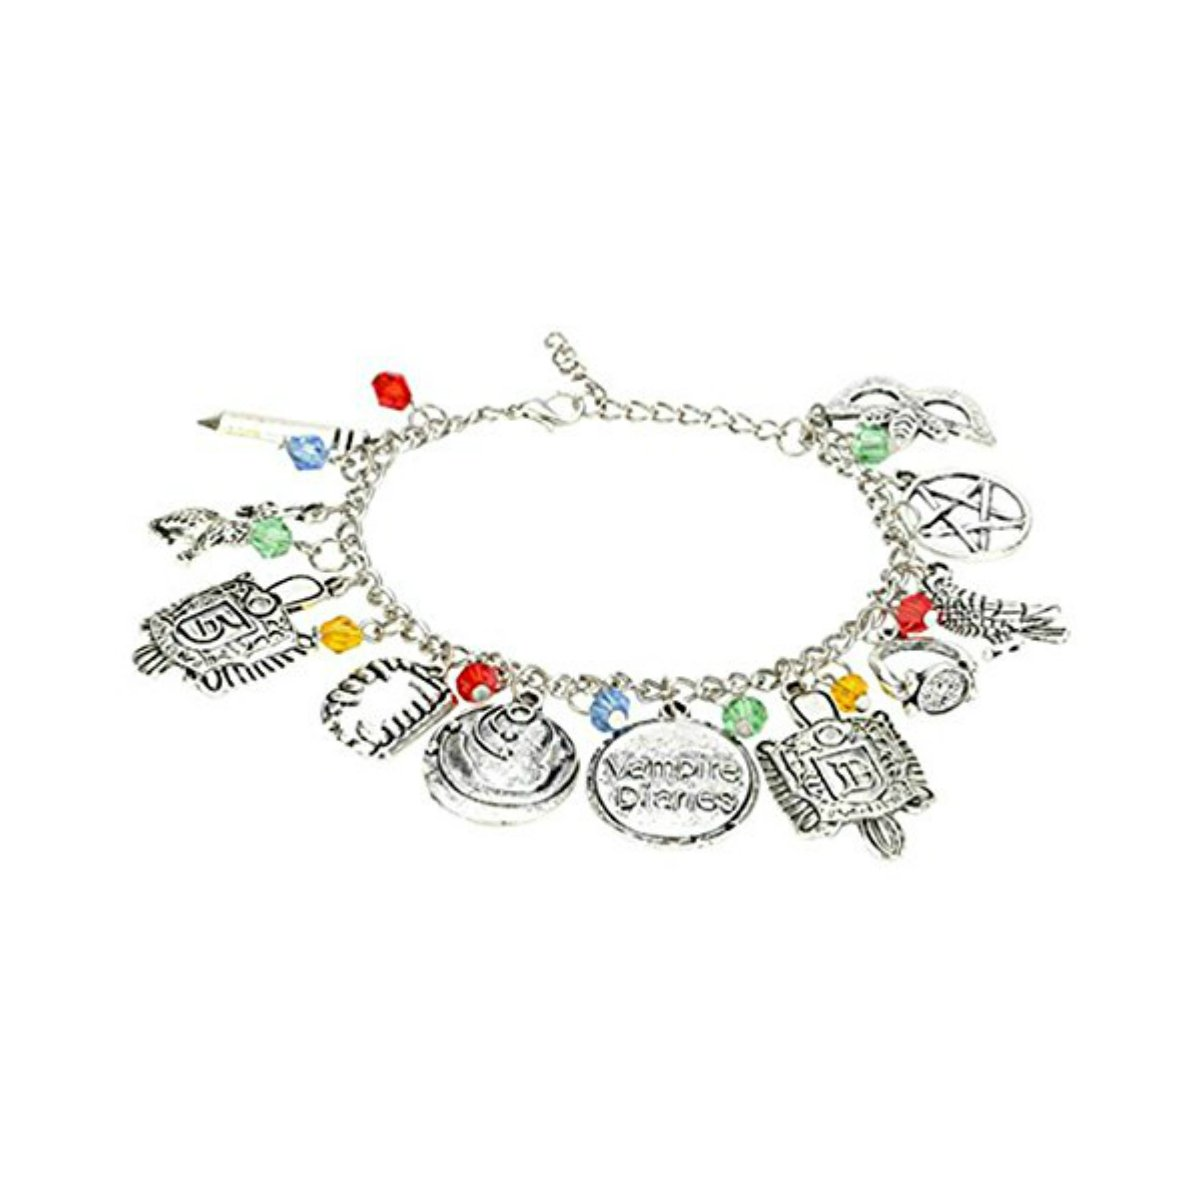 US FAMILY Vampire Diaries TV Series Theme Multi Charms Jewelry Bracelets Charm by Family Brands